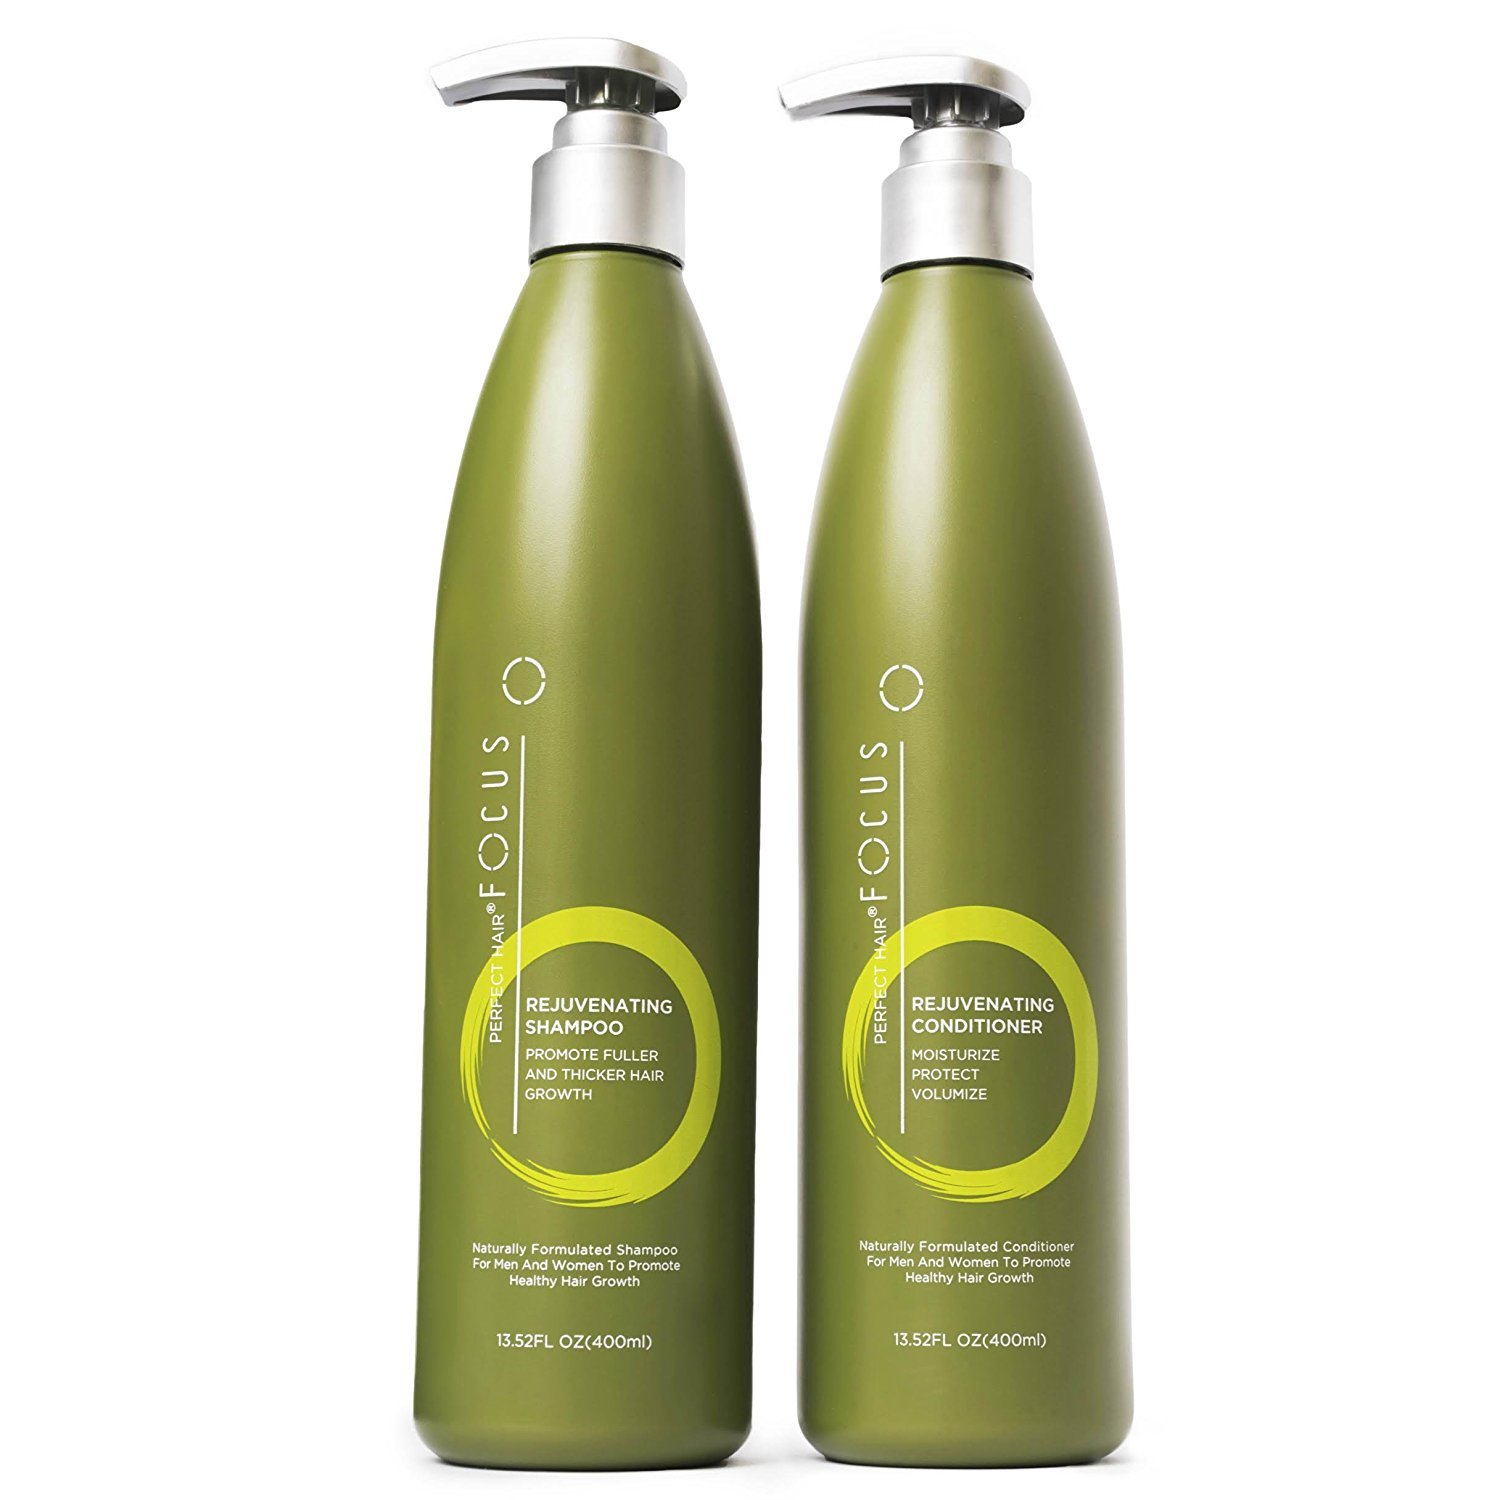 Natural Shampoo and Conditioner - Paraben and Sulfate Free Infused with Jojoba, Coconut, Argan Oil and Biotin - Color Safe Formula Promotes Hair Growth - Includes Pump - 13.5 ounce (1 Pack)